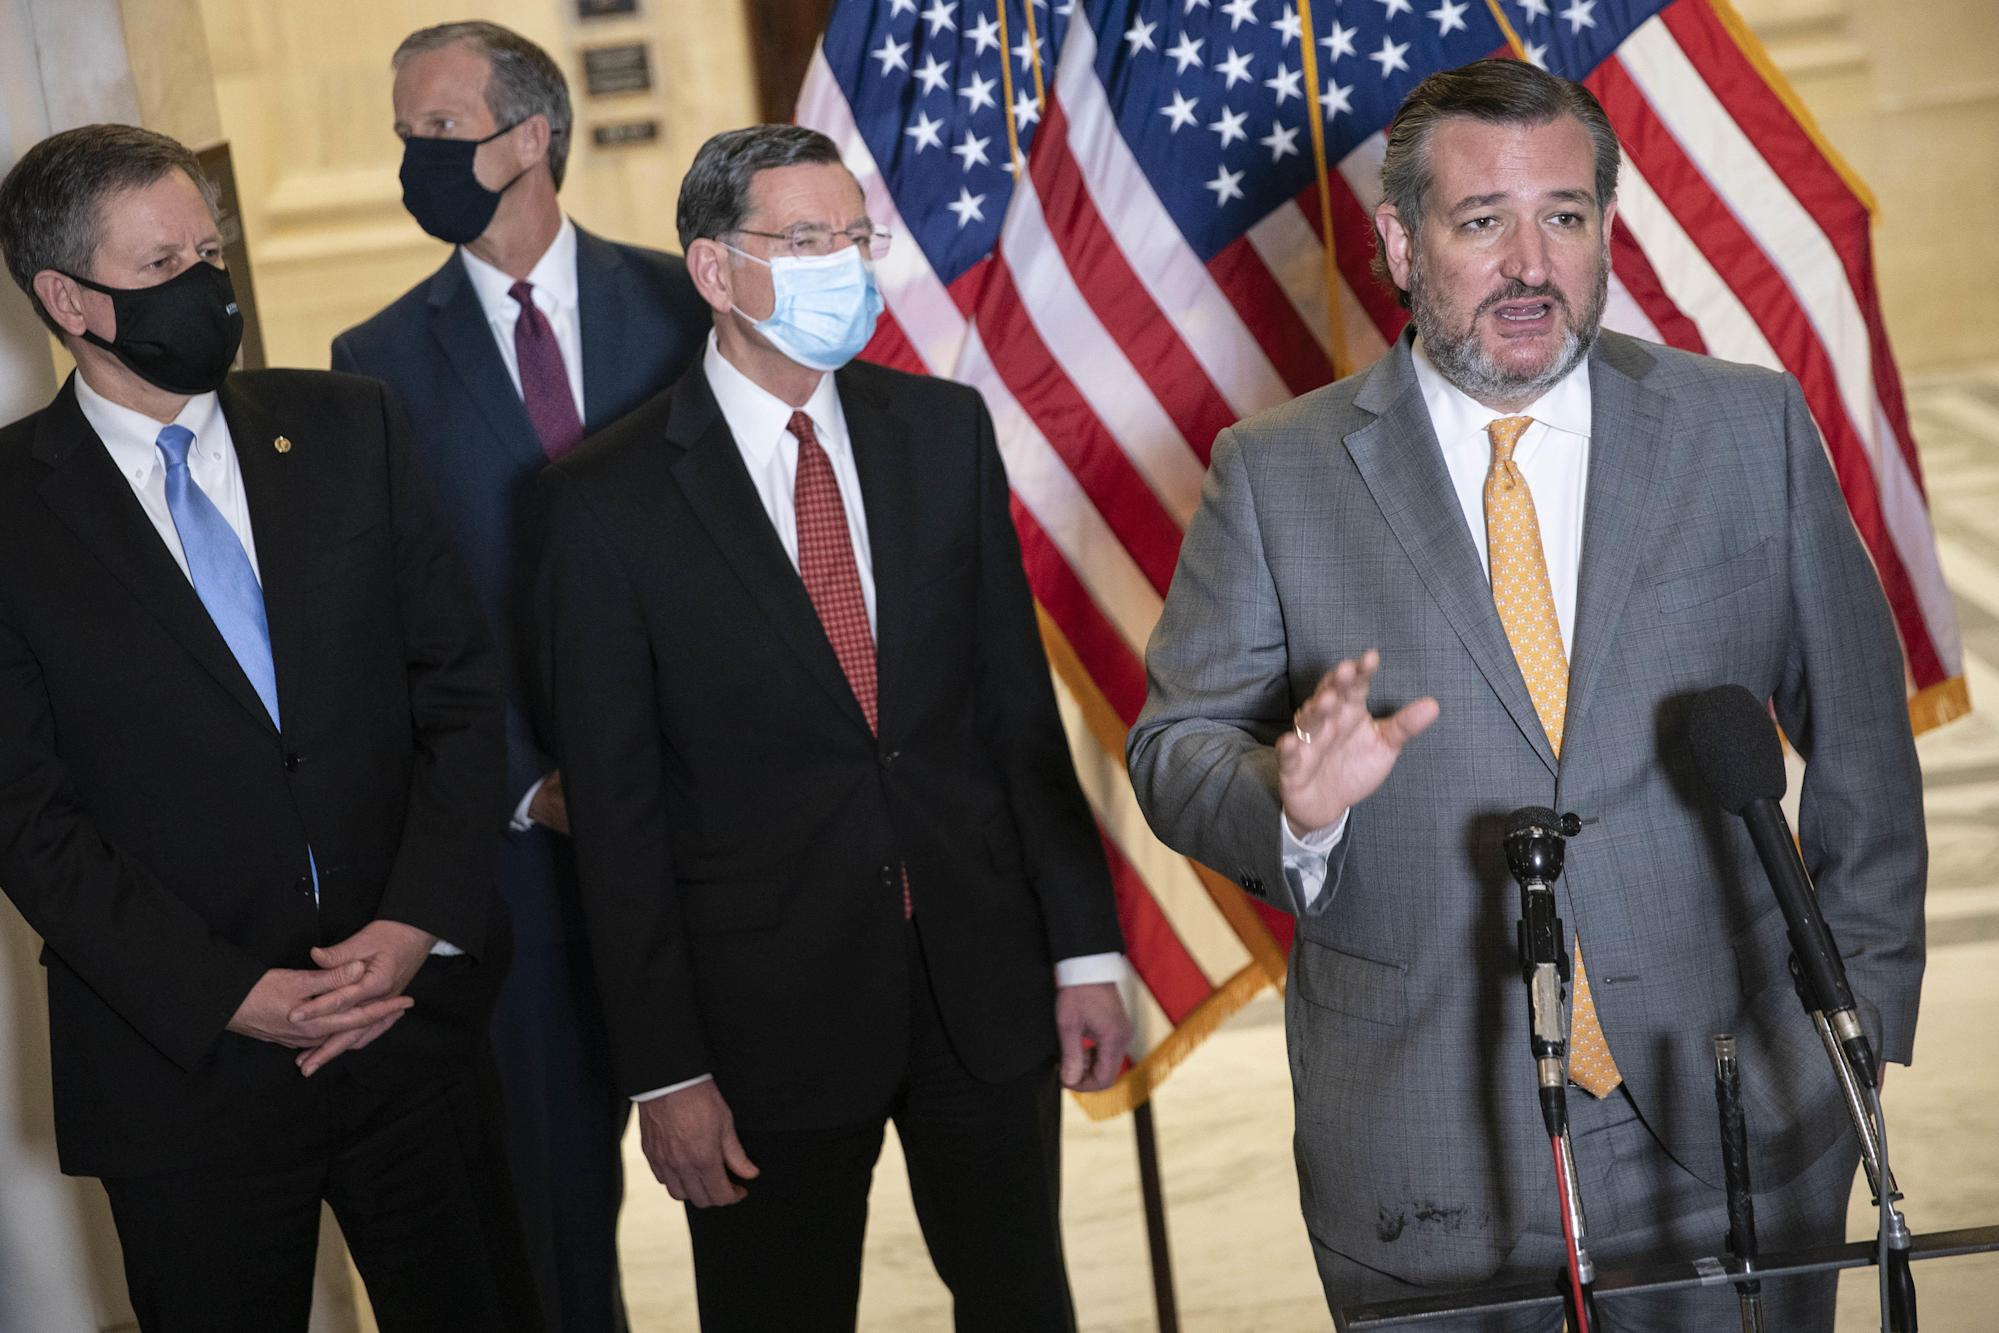 Ted Cruz suggests he will no longer wear a mask in the Capitol